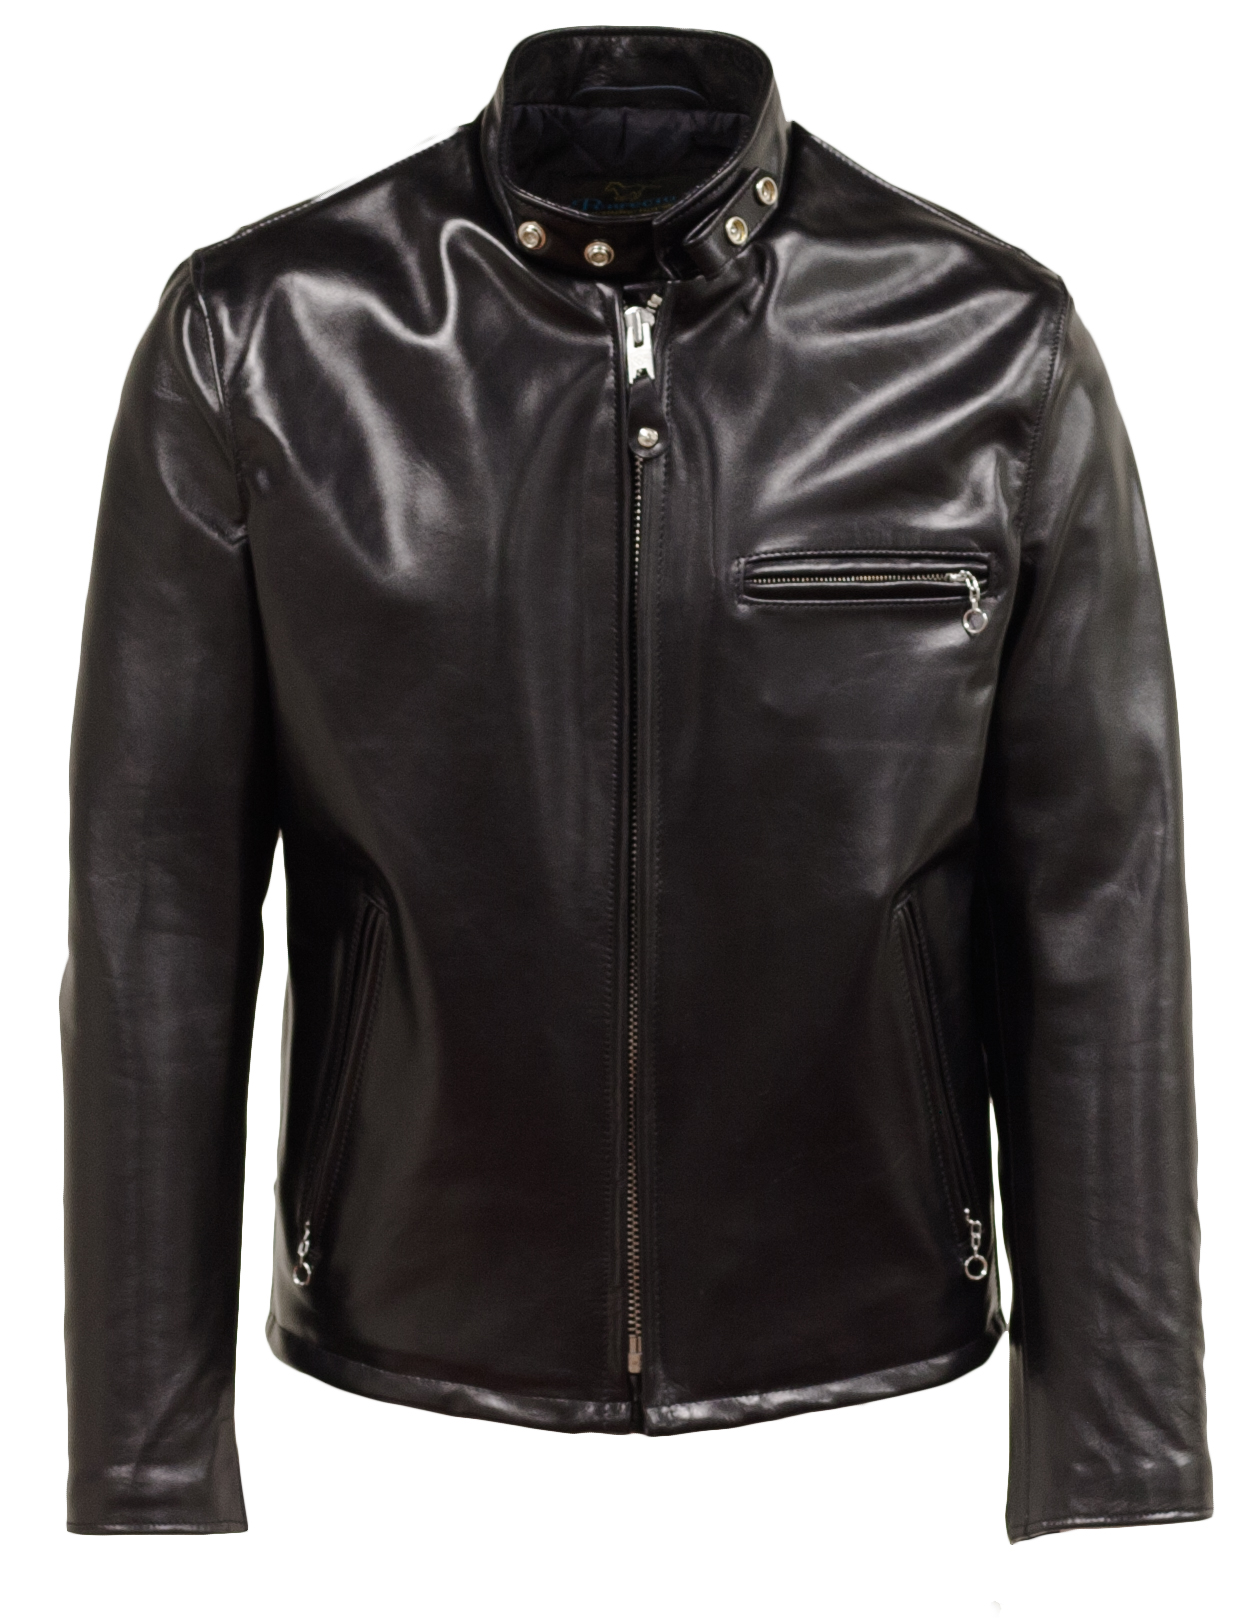 Schott N.Y.C. 641HH Classic Schott Racer Black Leather Motorcycle Jacket in Horsehide